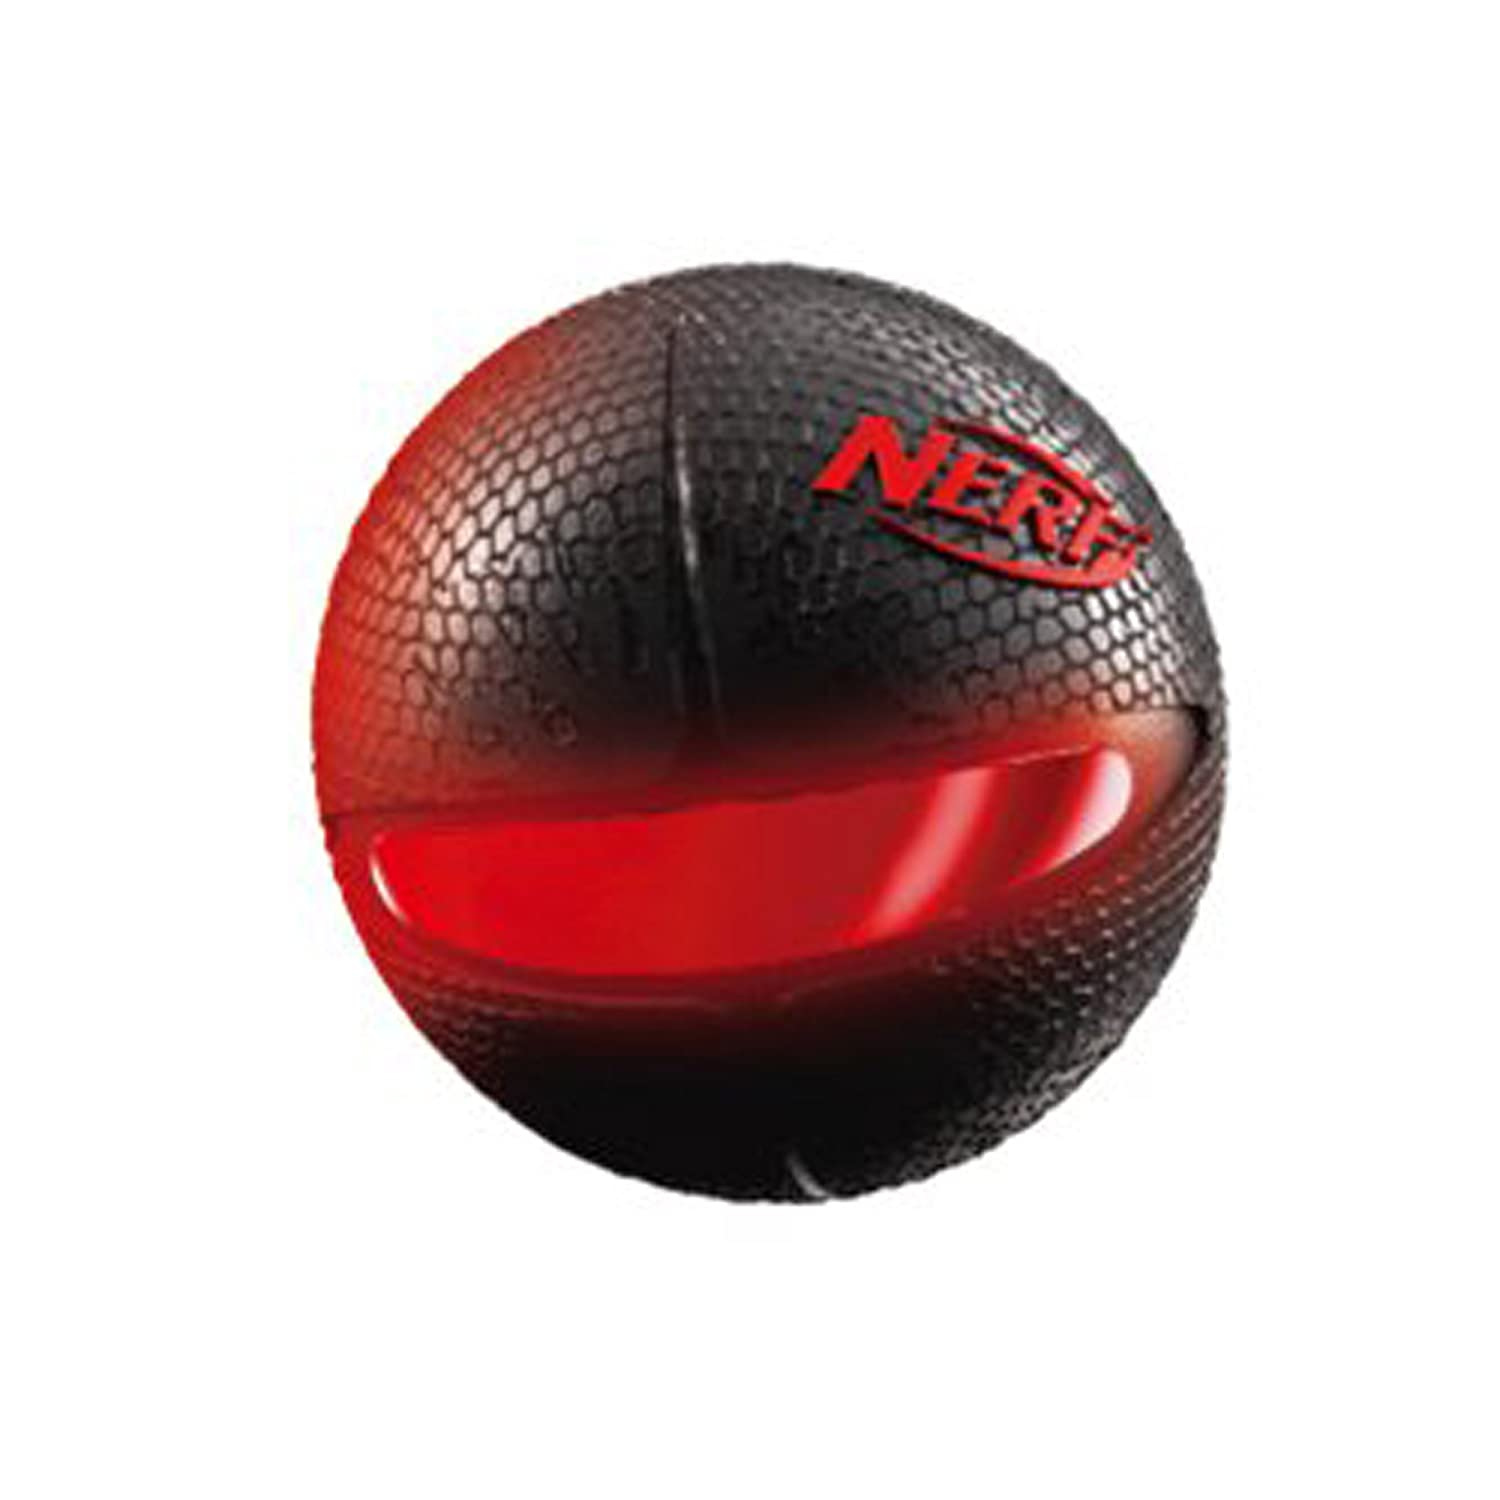 Amazon.com: Firevision Hyper Bounce Ball and Red Firevision Frames ...